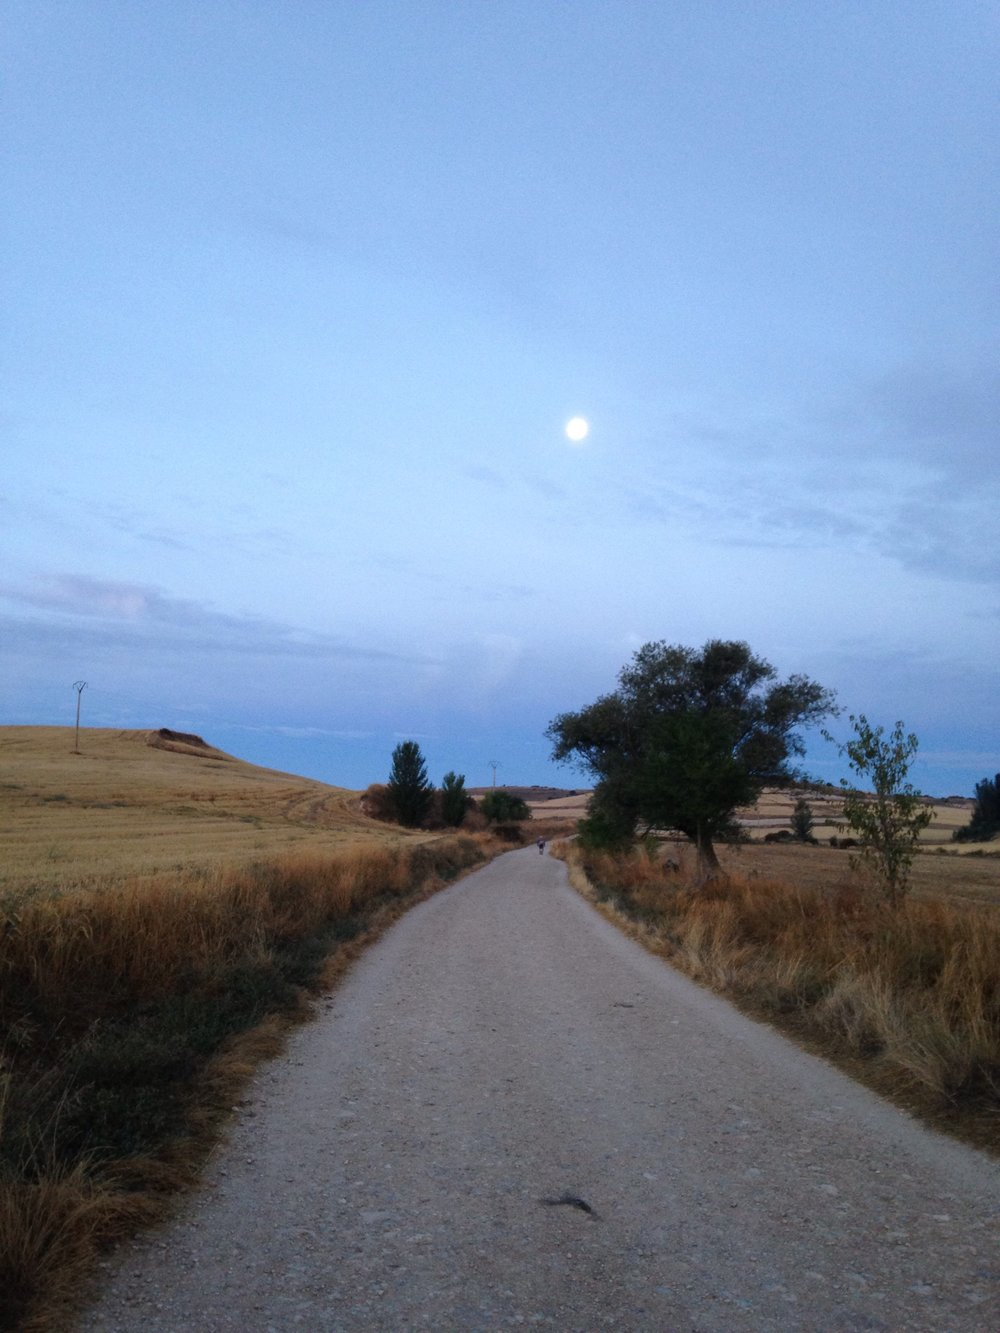 sunrise on the meseta